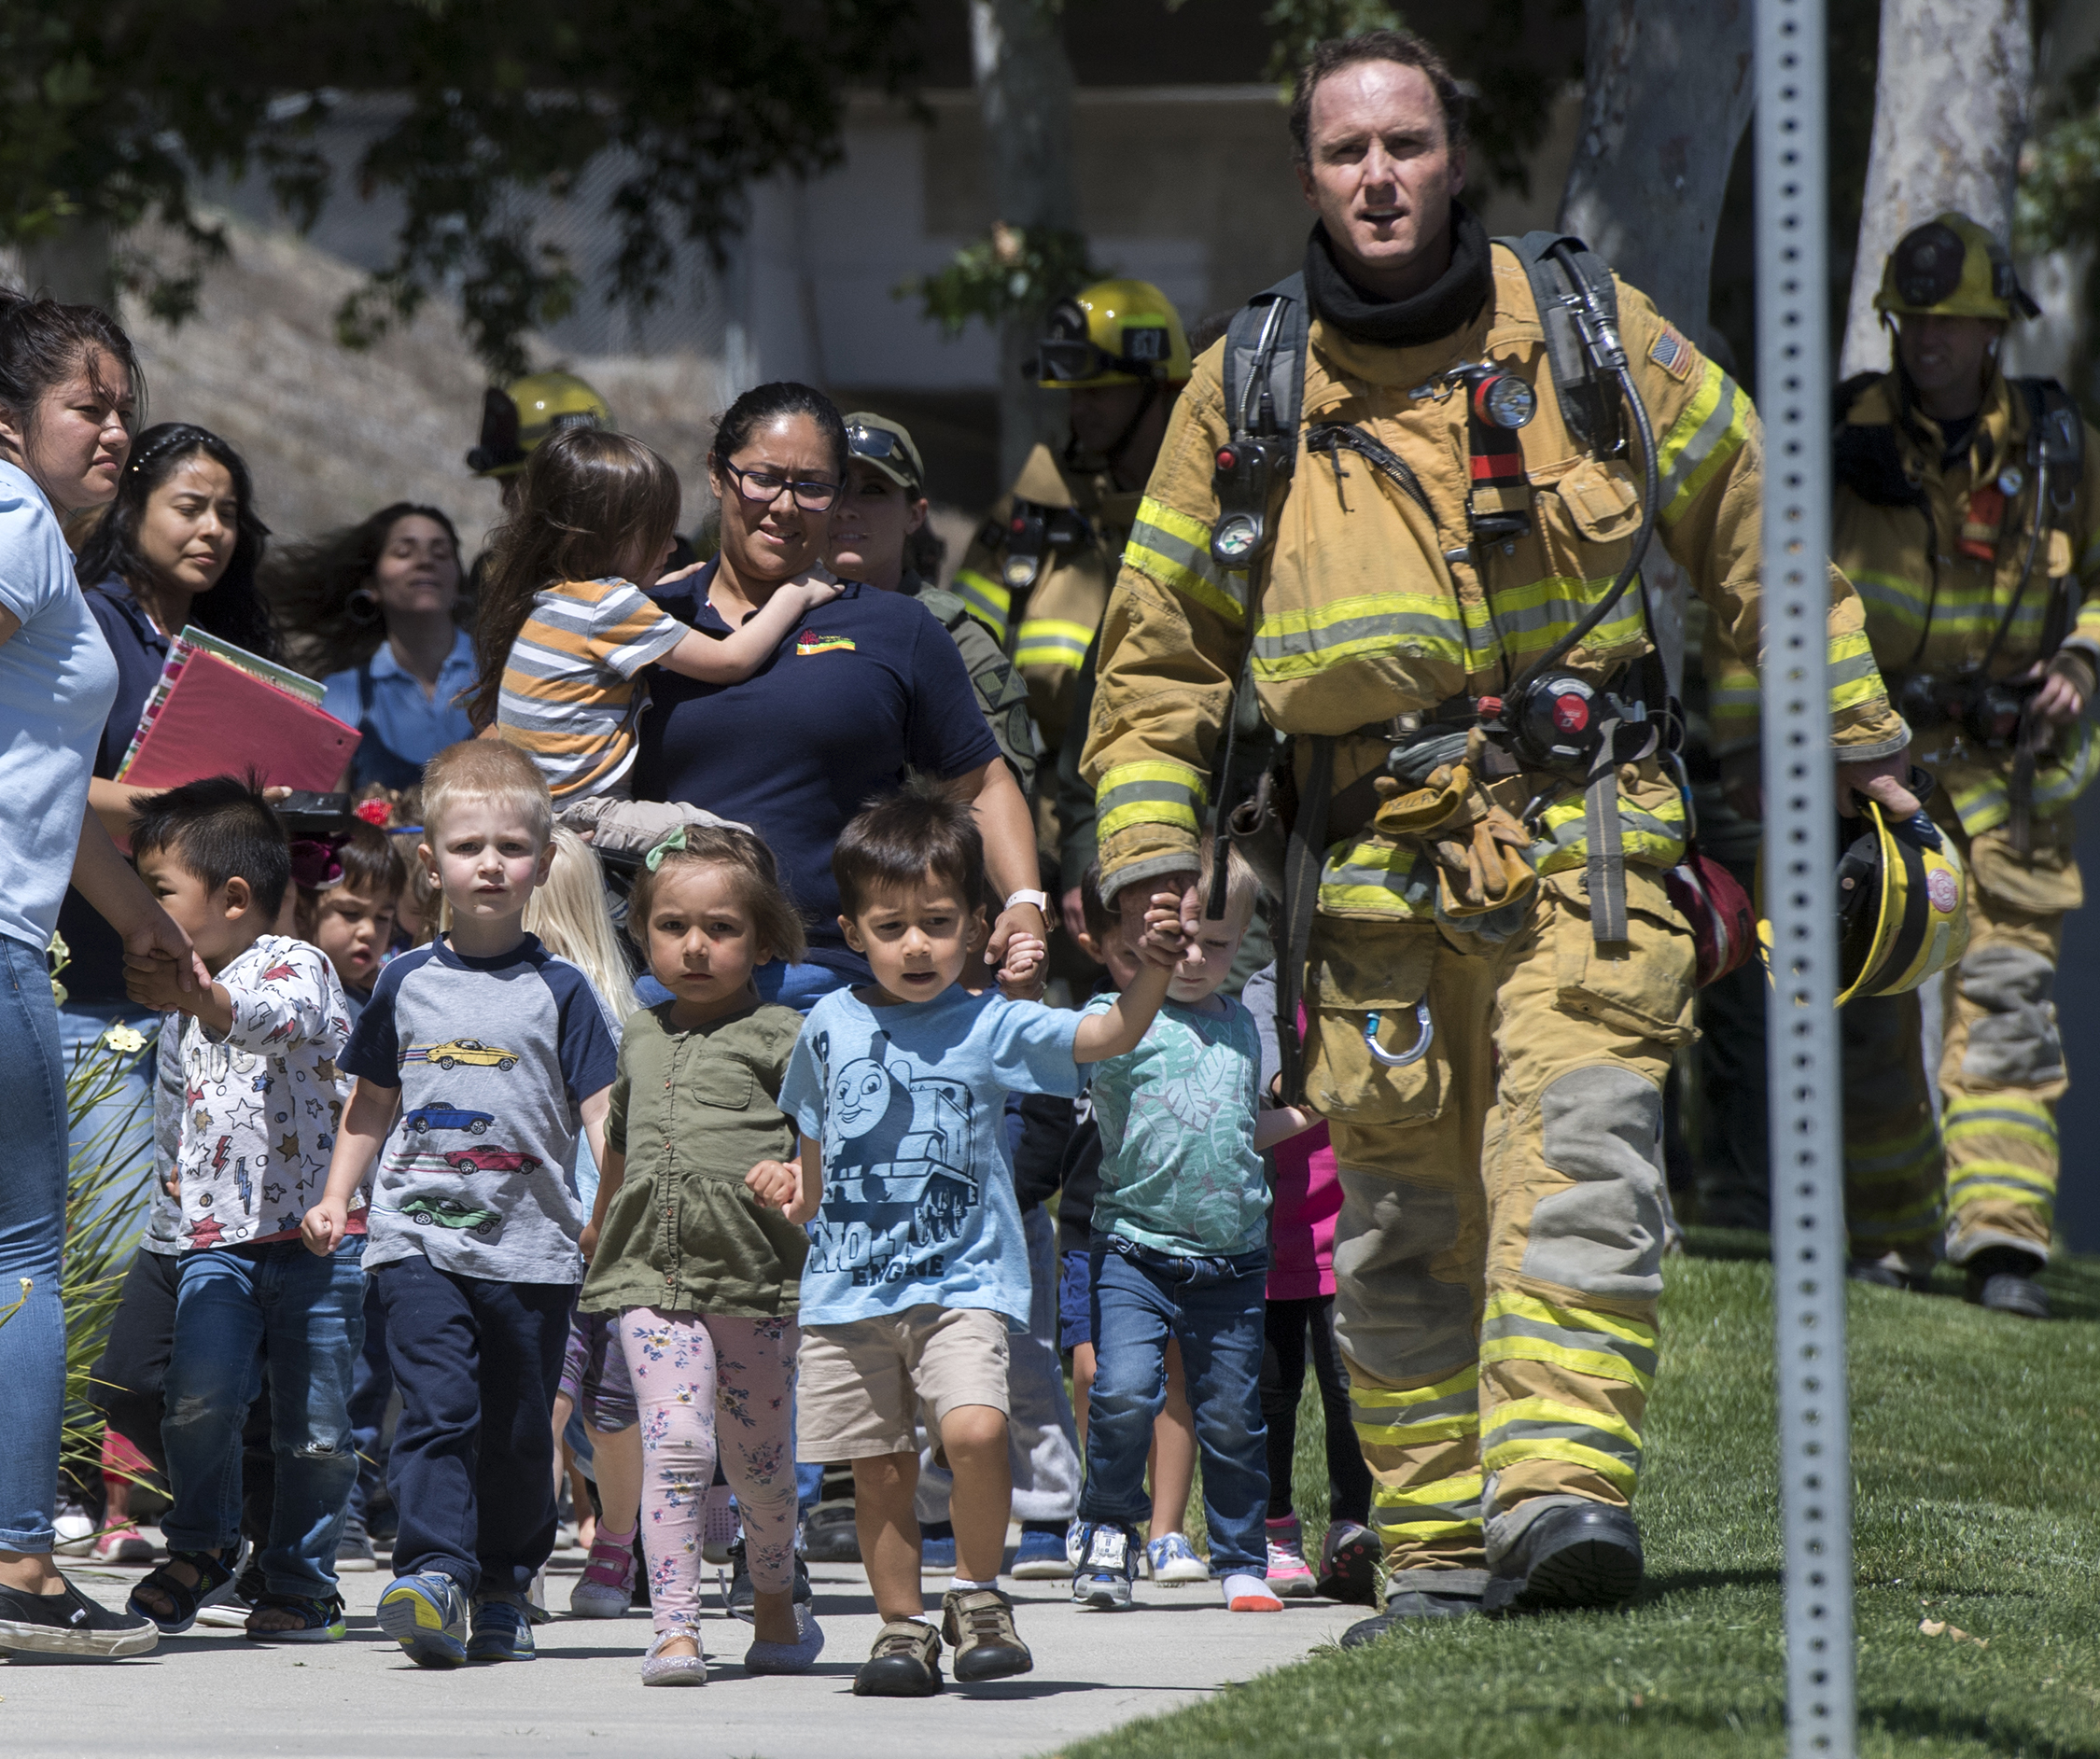 Fire fighters and Sheriff deputies escort children from Academy on the Hill pre-k school in Aliso Viejo on Tuesday, May 15, 2018 after a nearby explosion killed one person and injured two others.